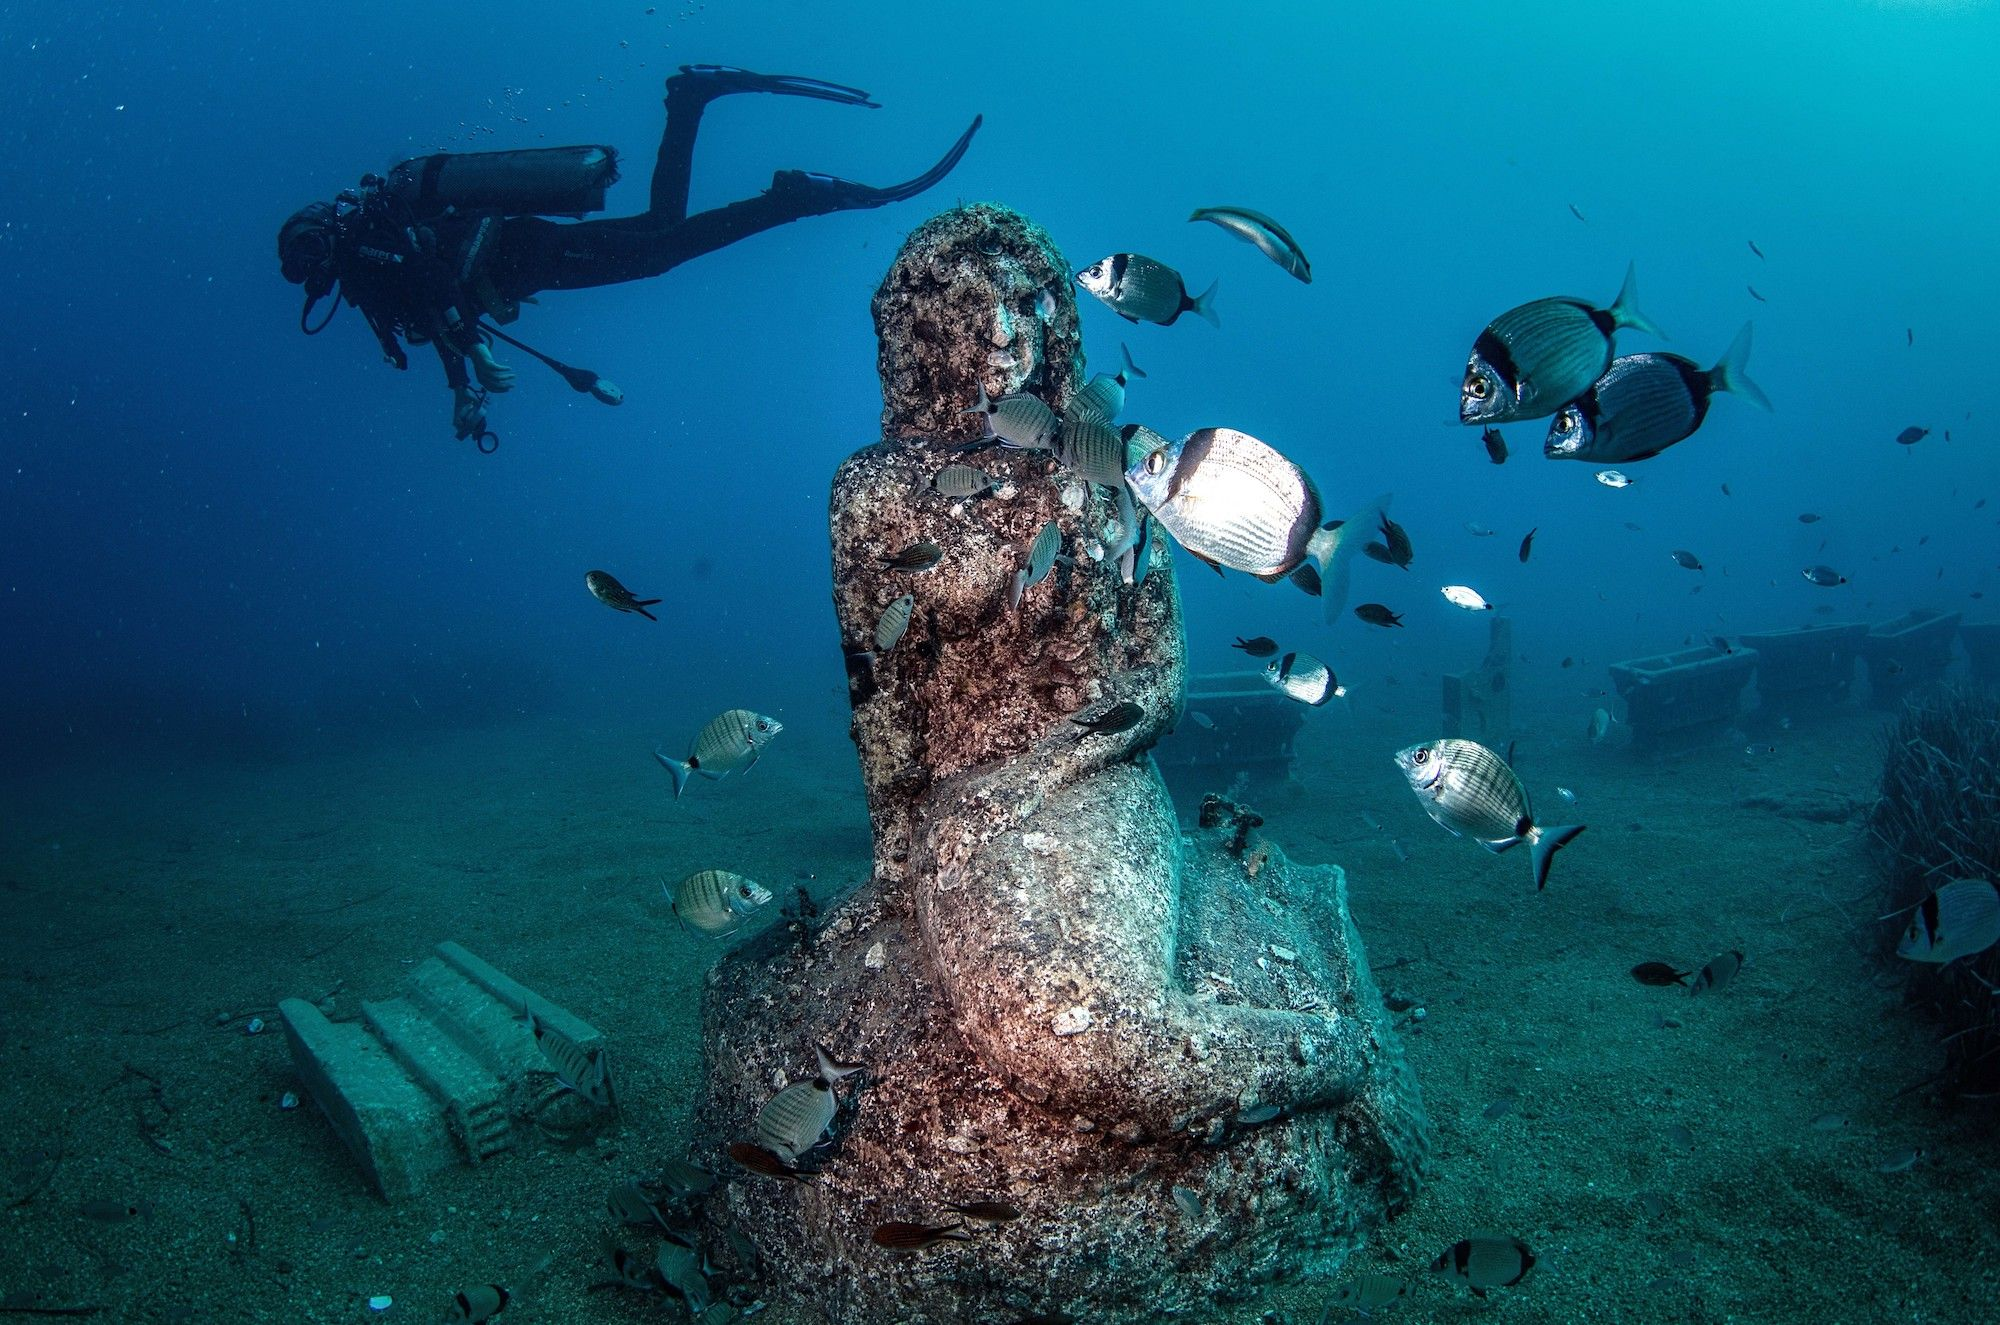 These 3 Underwater Galleries In France Are An Adventurer's Dream